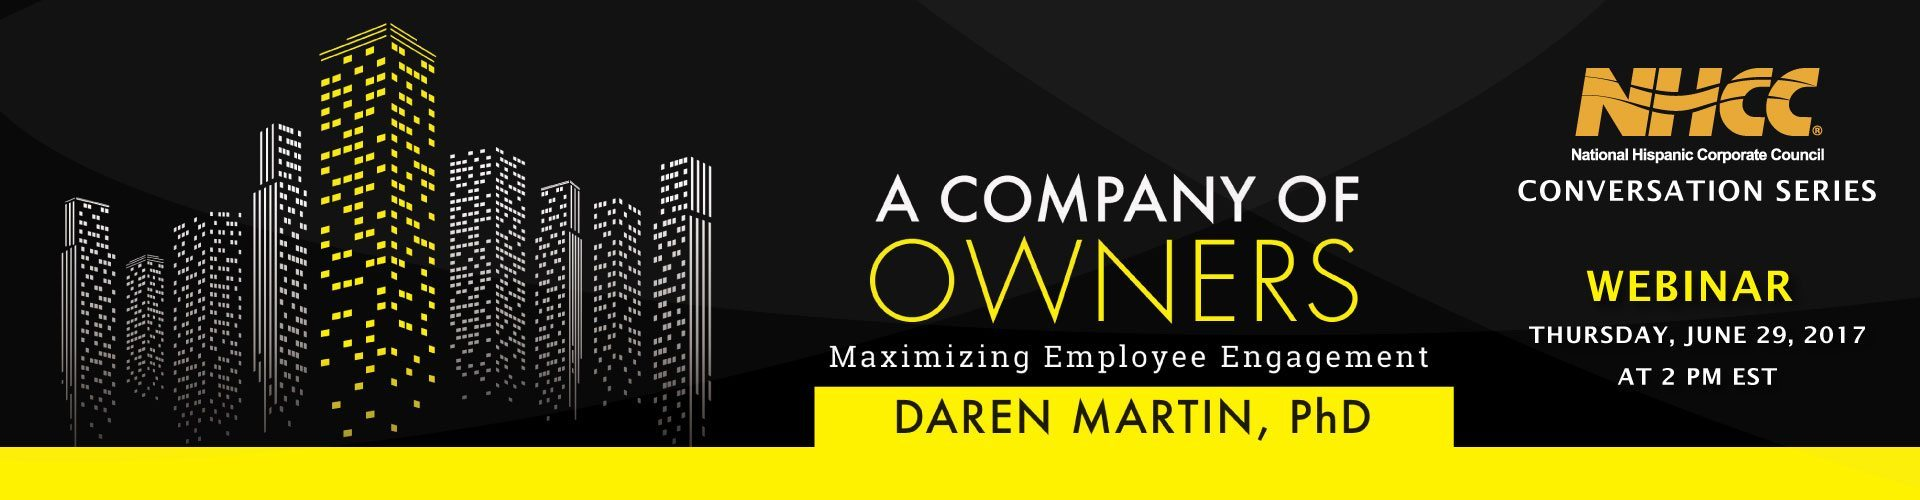 NHCC Webinar Series – Creating A Company of Owners with Daren Martin-PhD